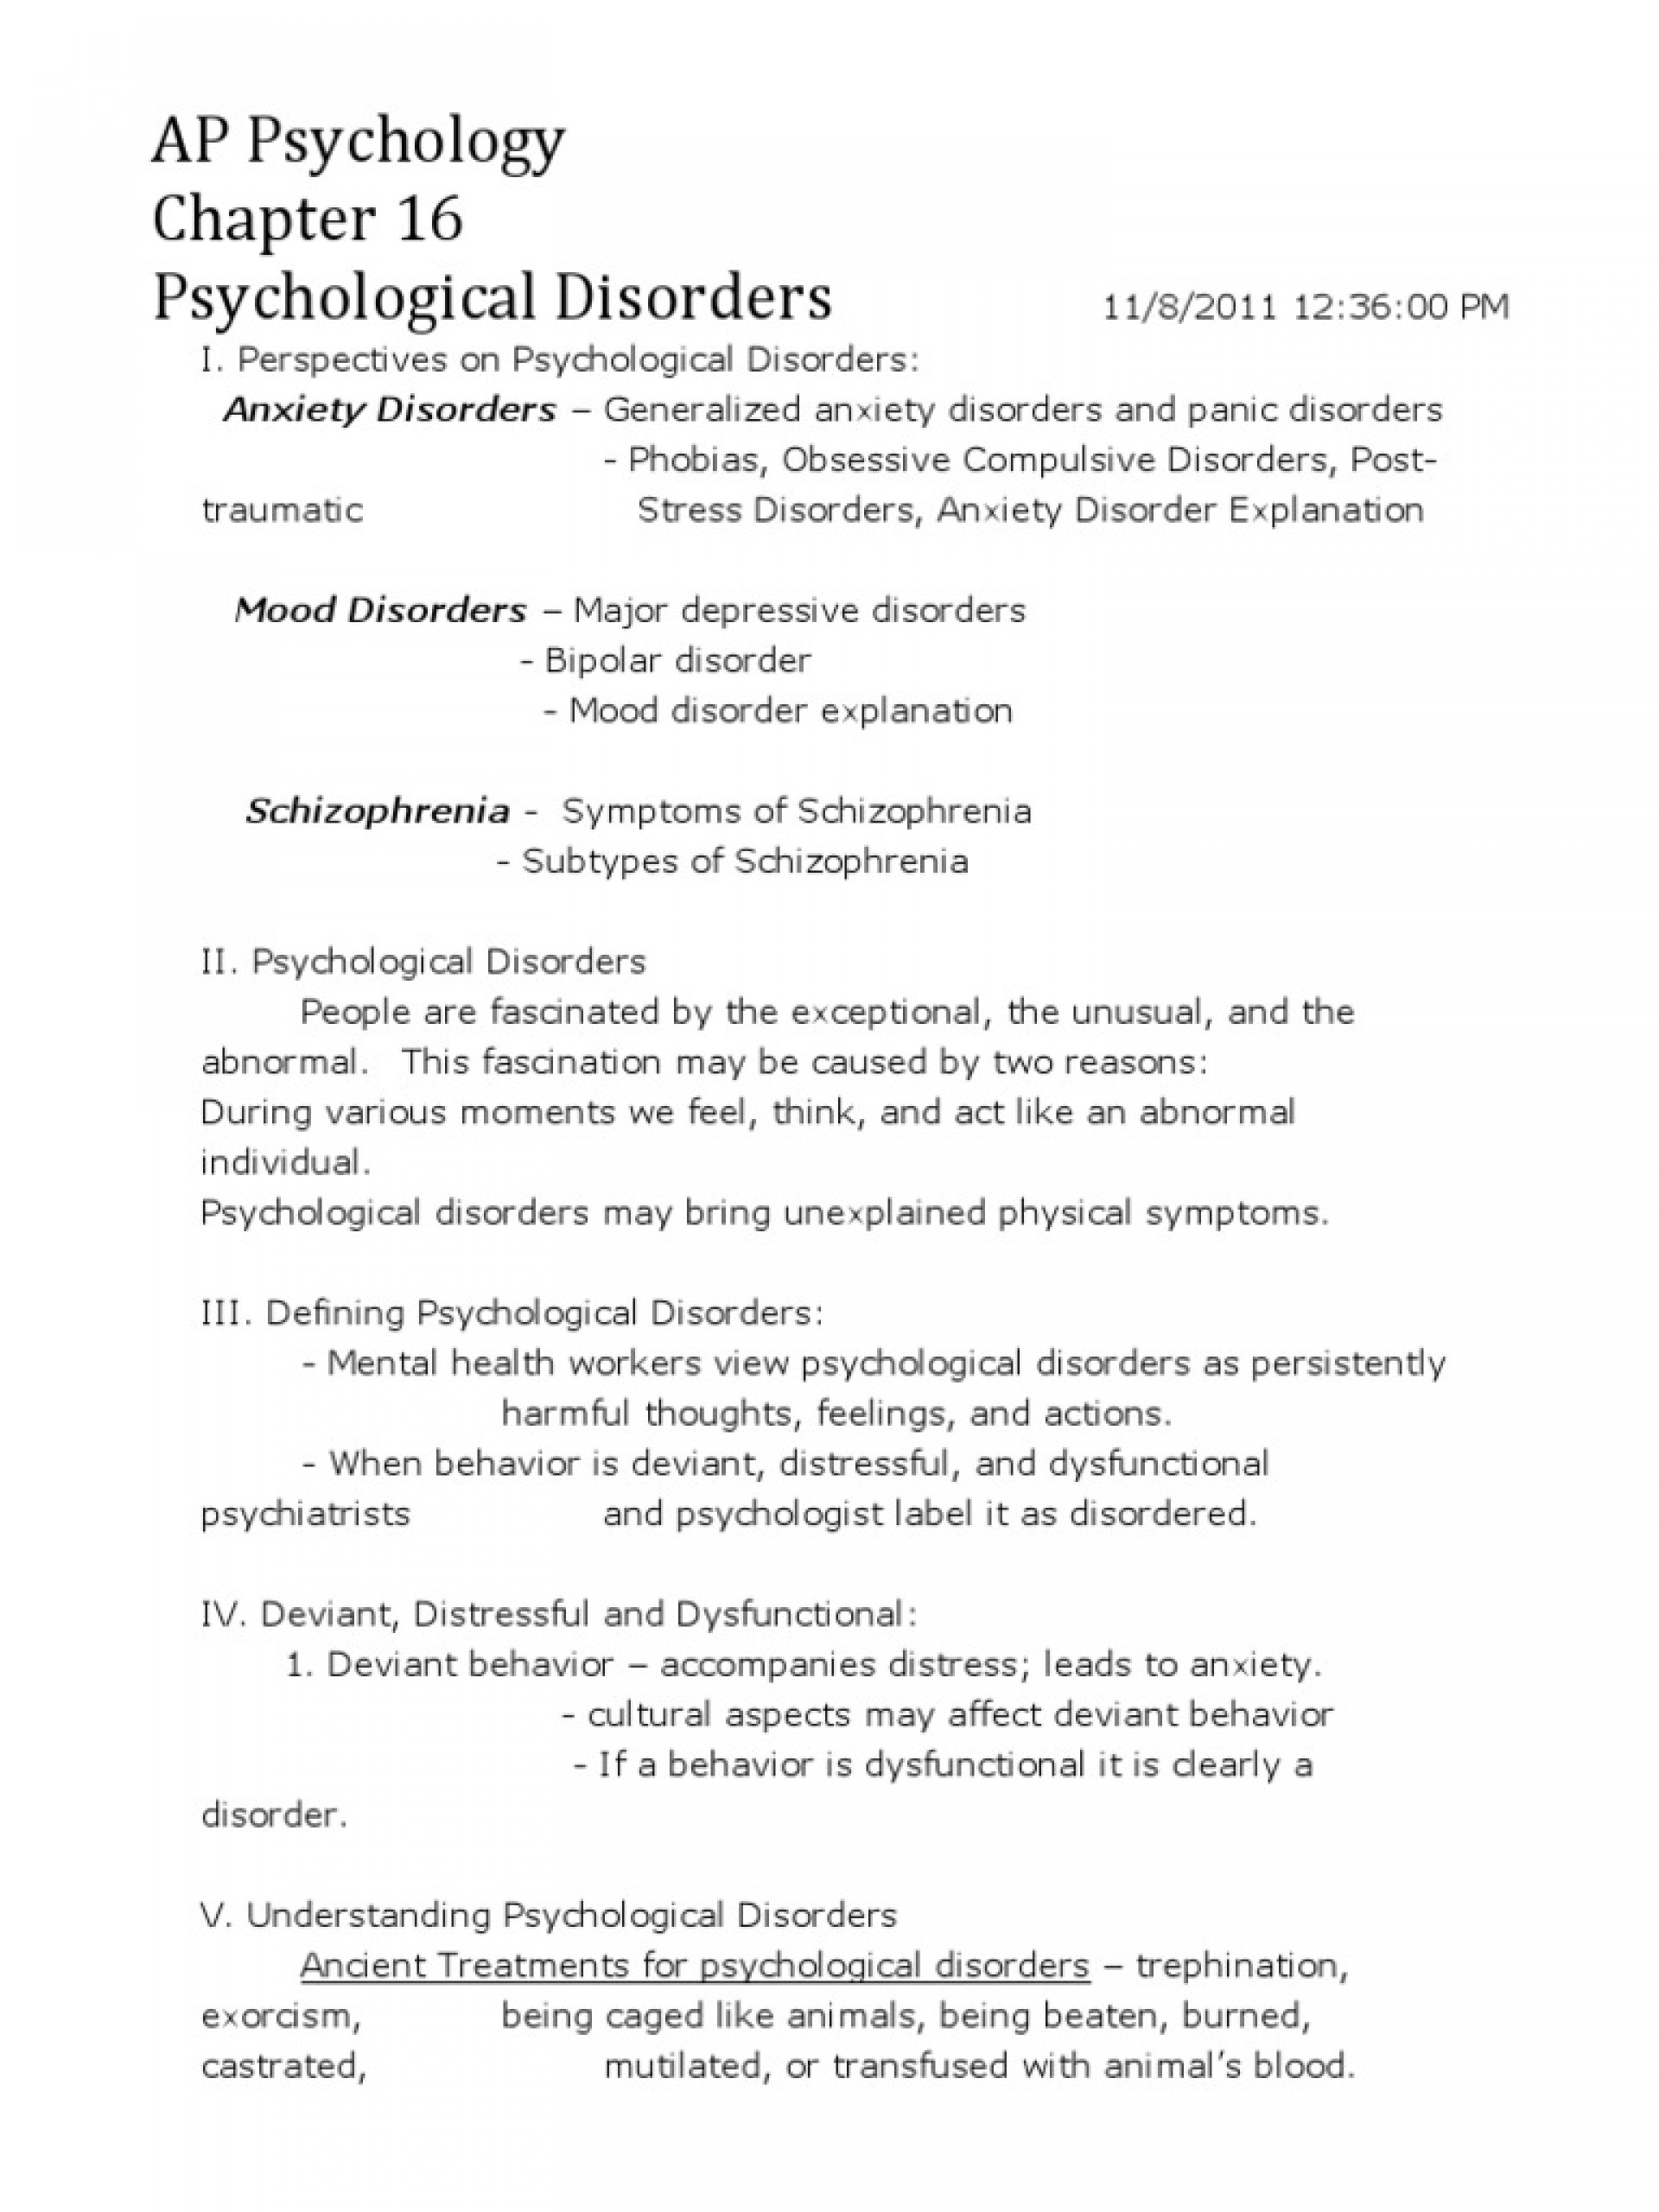 007 Research Paper Bipolar Disorder Essay Topics Title Pdf College Introduction Question Conclusion Examples Outline Rare Psychology 1920